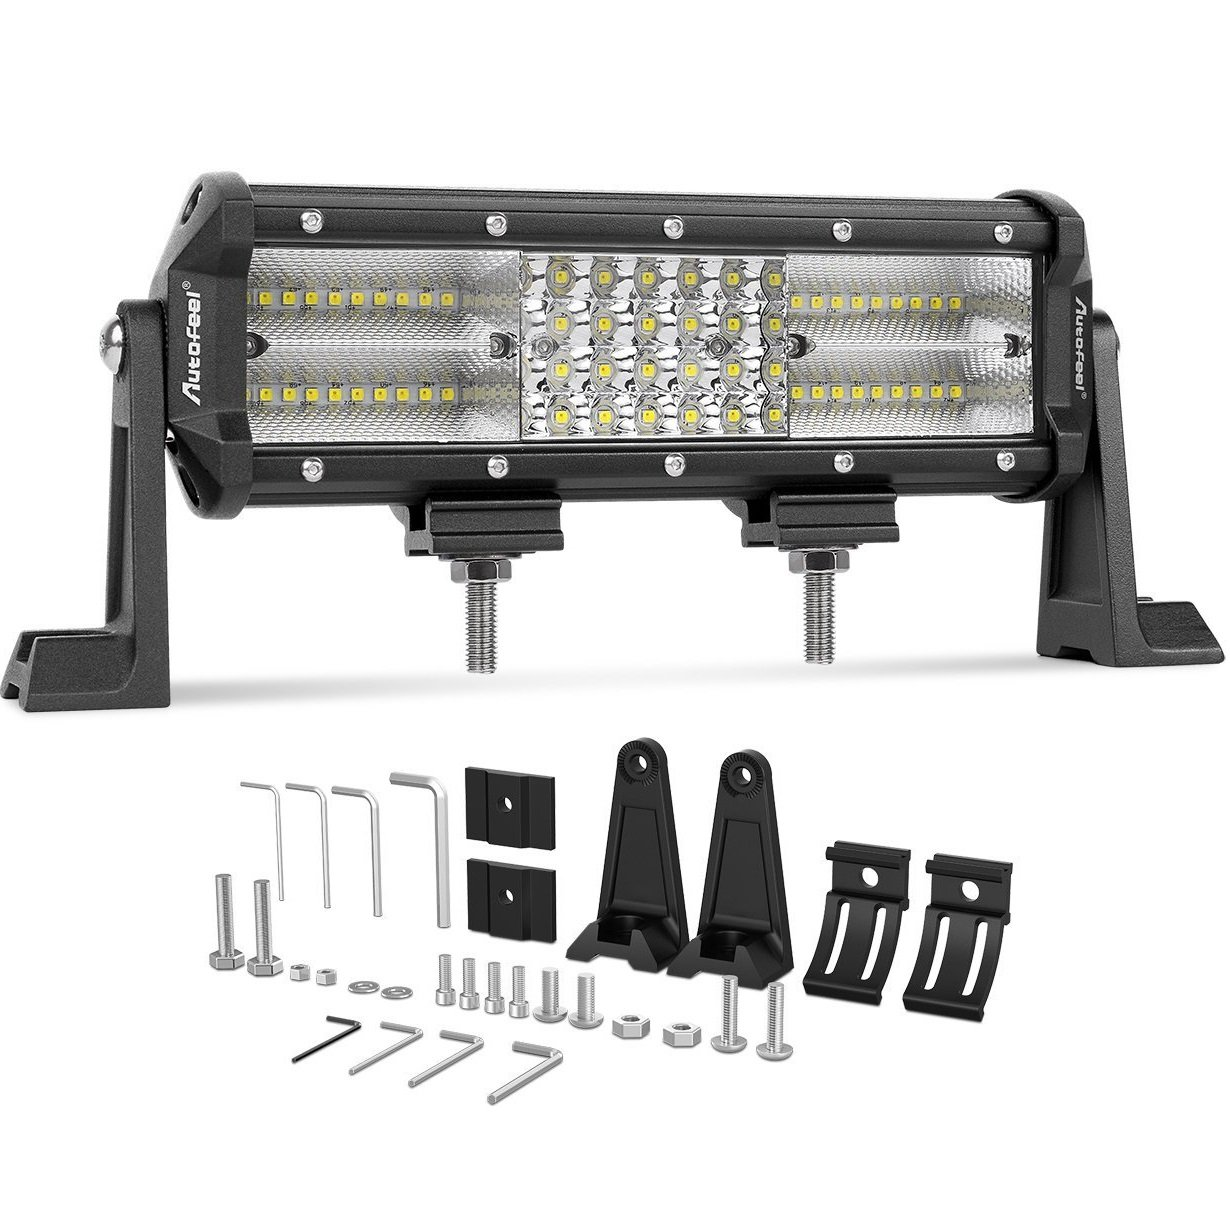 Led Light Bar Autofeel 9 Inch 8d Quad Row Spot Flood Hi Lo Lights Wiring Diagram Atv Combo Beam Cree Of Road Auto Work With Slide Mounting Brackets For